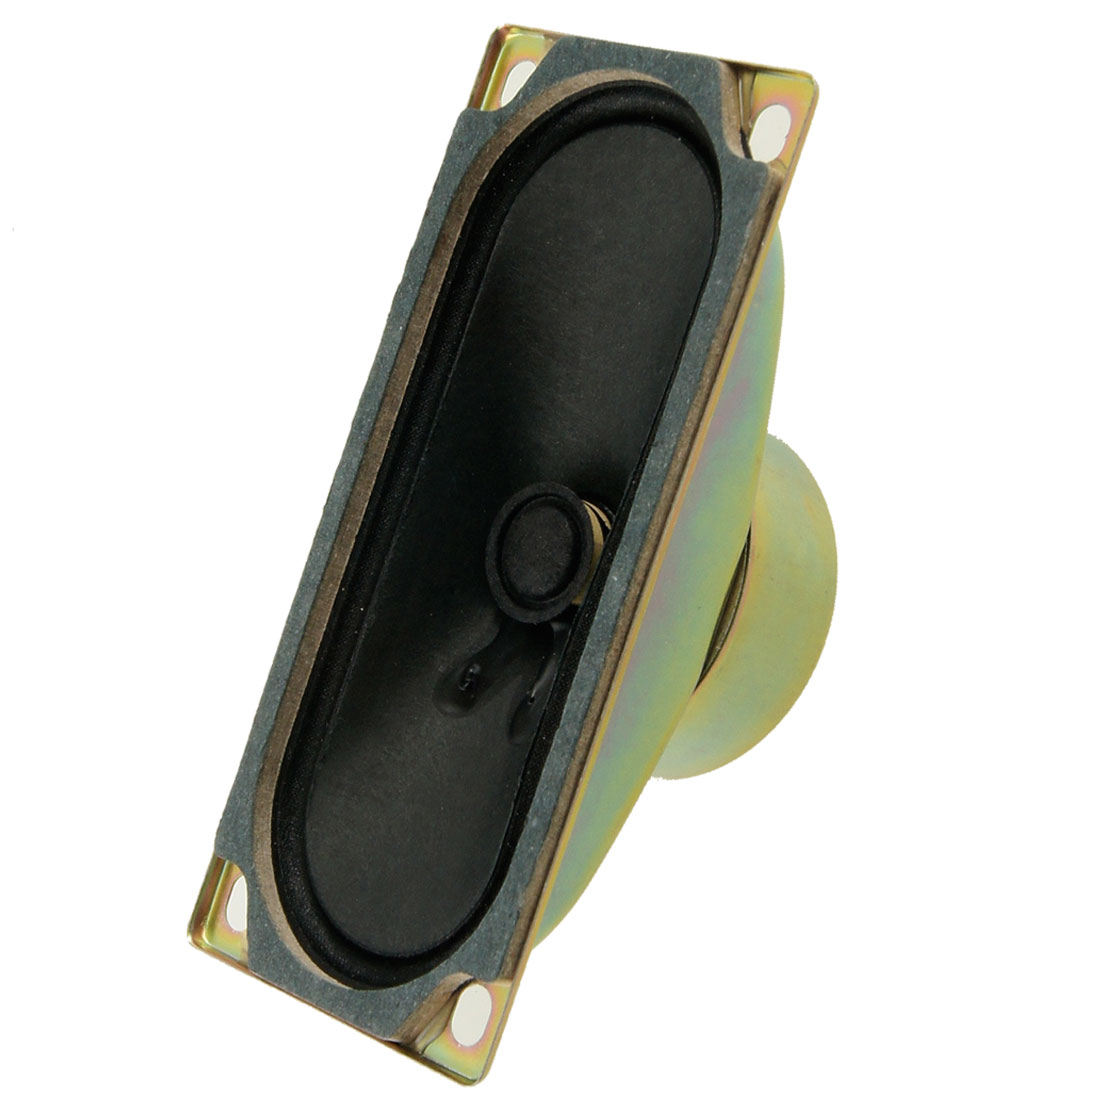 Replacement 120mm x 50mm Square Mount LCD TV Speaker 10W 8 Ohm